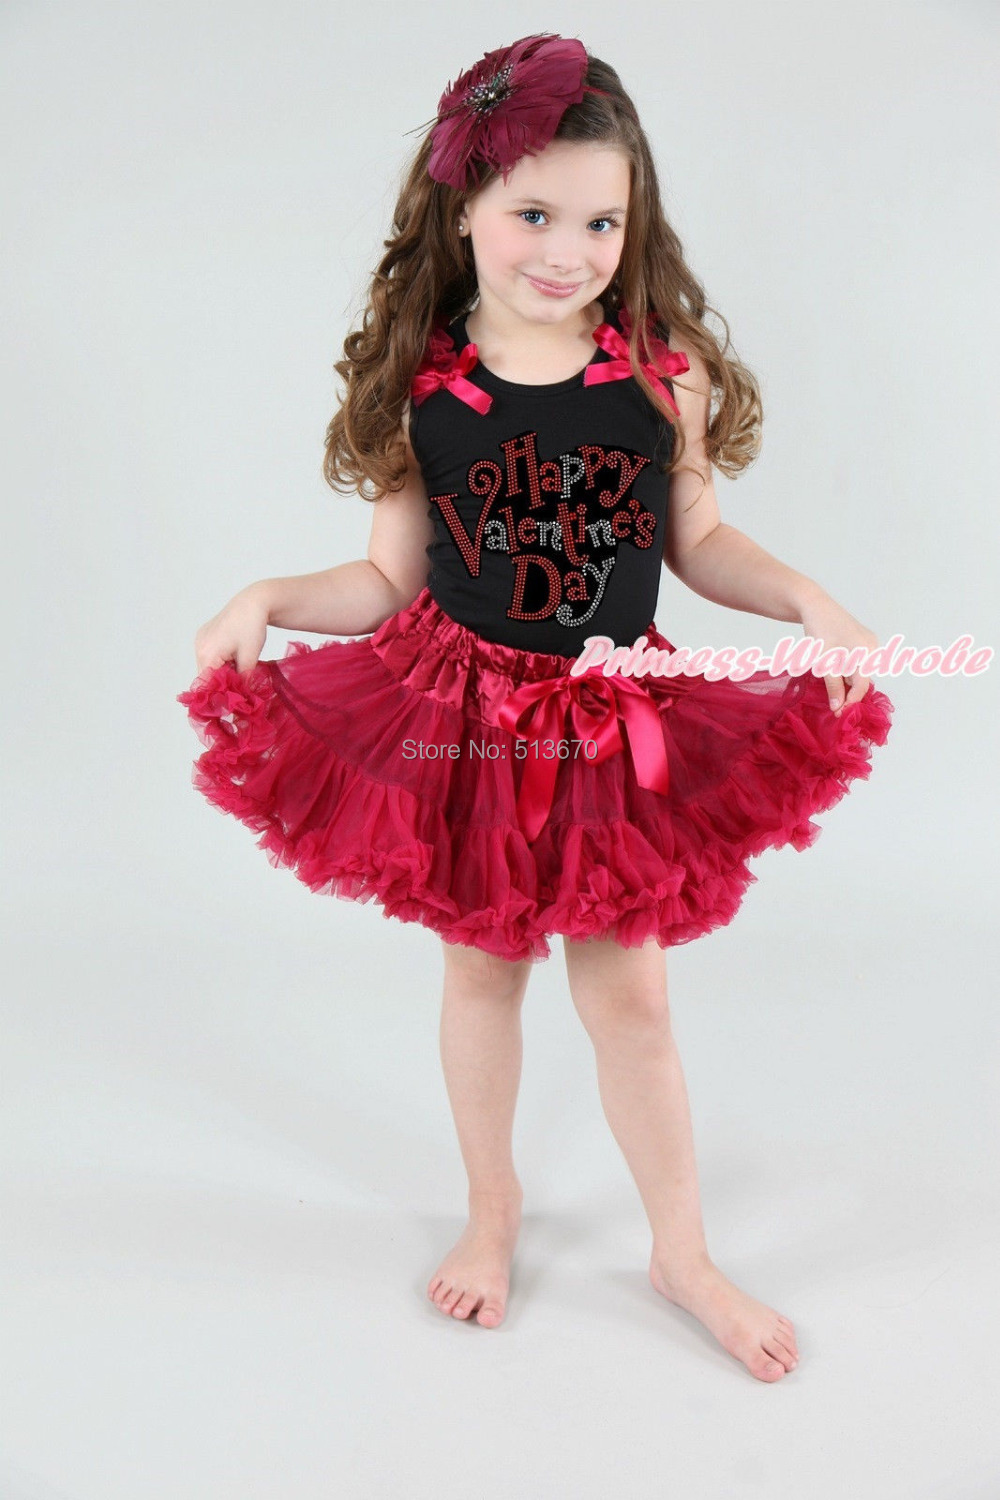 Rhinestone Happy Valentine Girl Black Pettitop Raspberry Wine Red Skirt 1-8Year MAPSA0158<br>